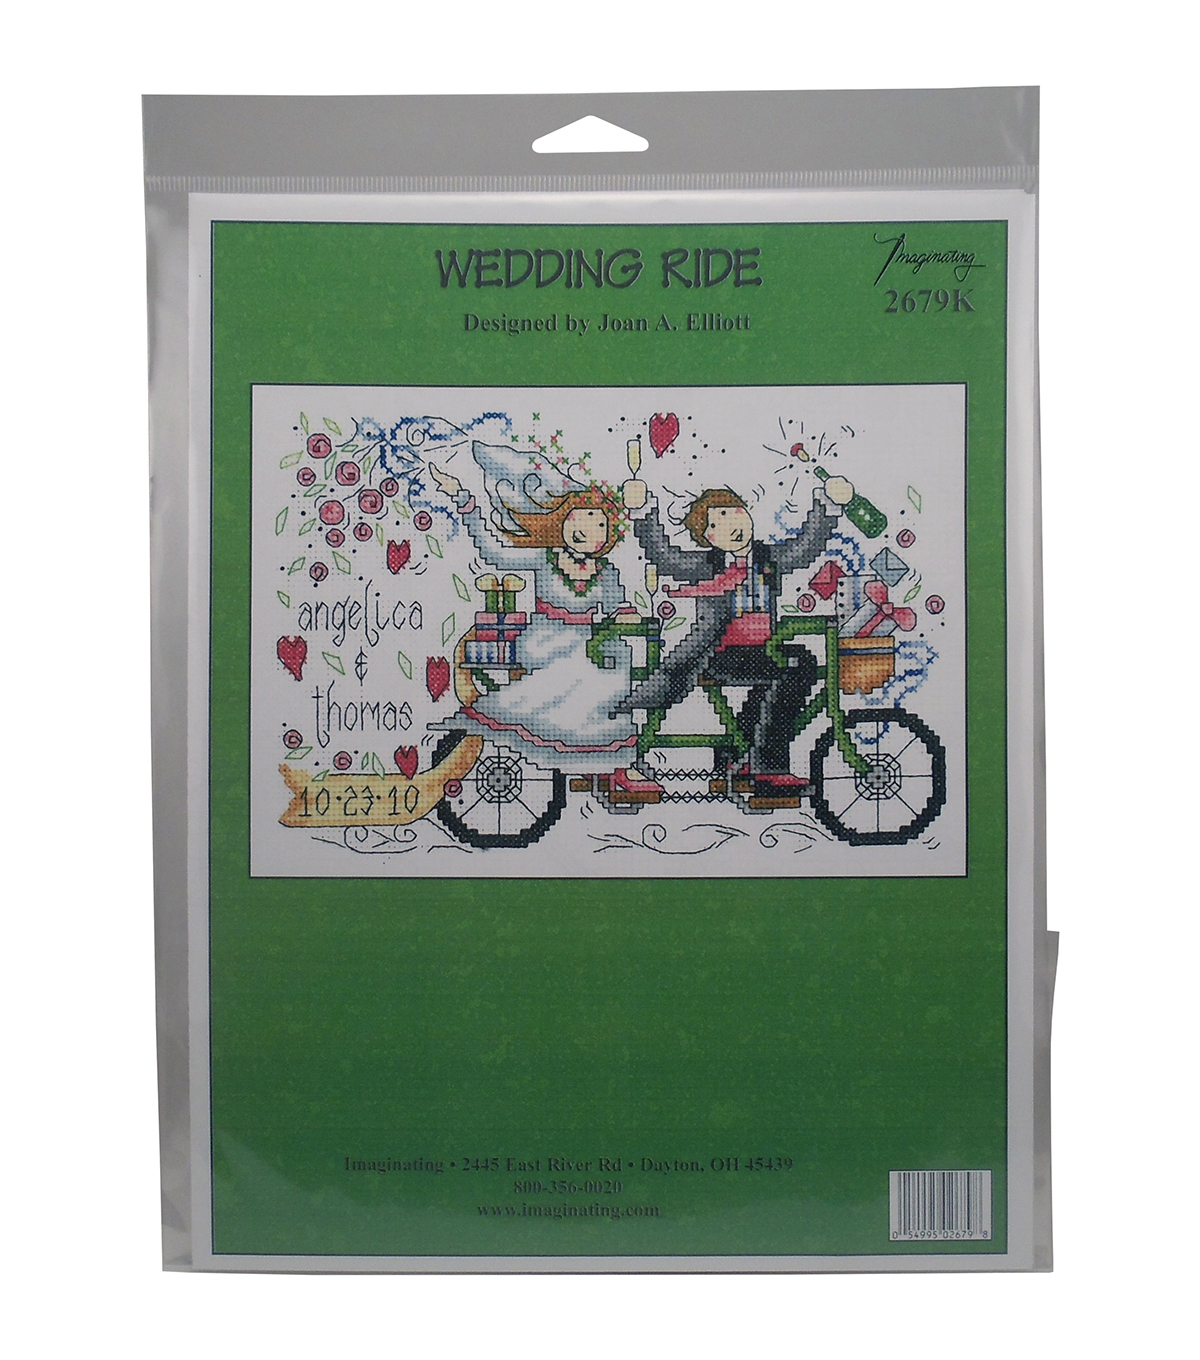 Imaginating Counted Cross Stitch Kit-Wedding Ride Wedding Record